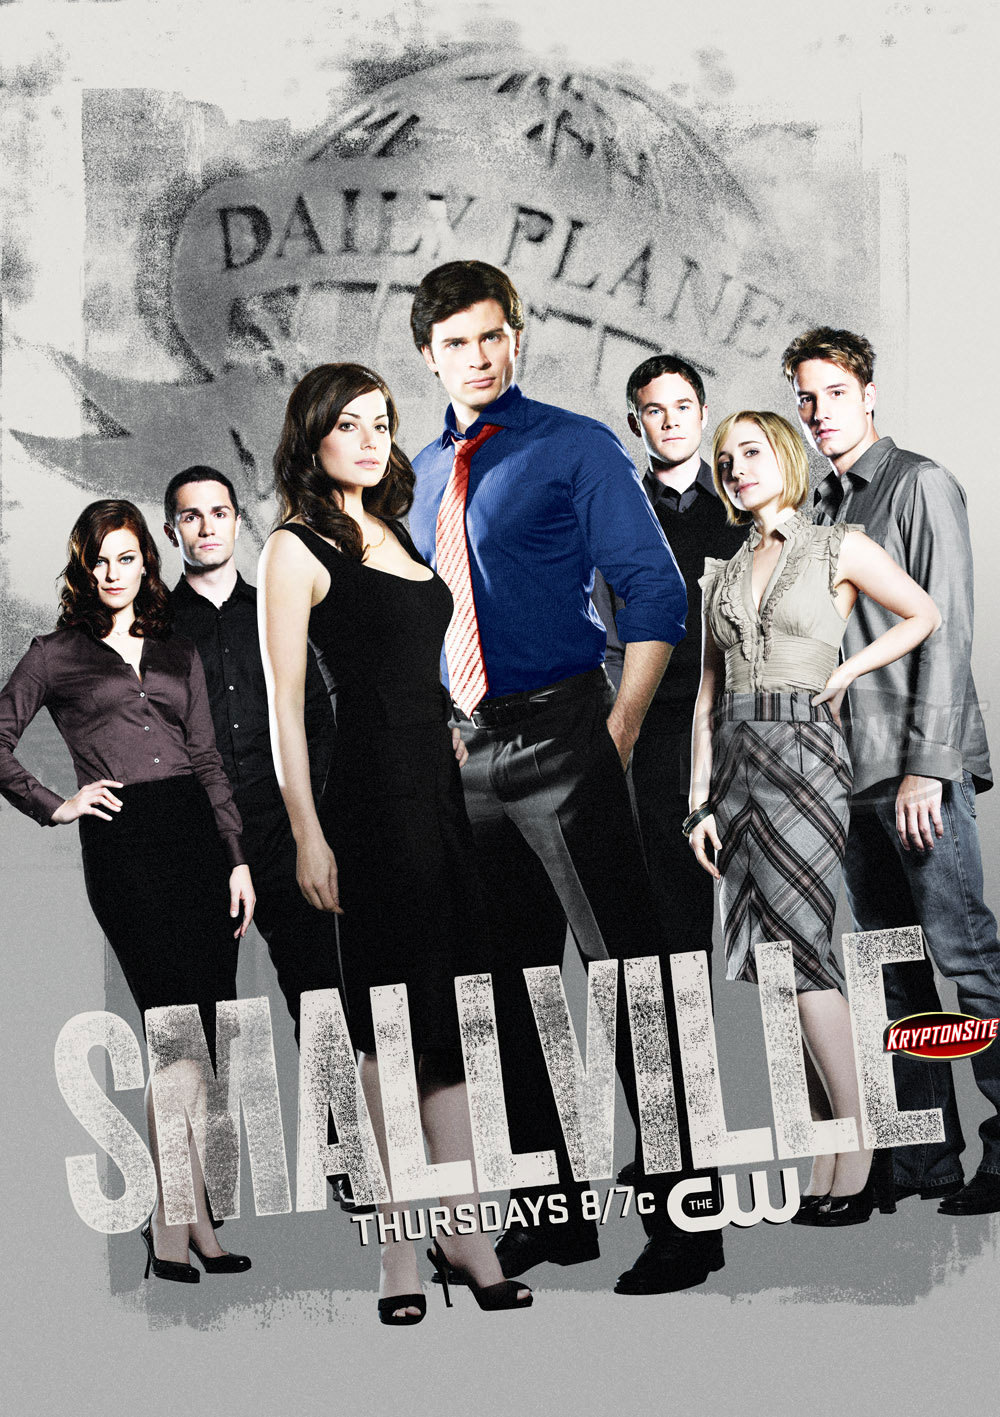 http://images2.fanpop.com/images/photos/6500000/Smallville-2009-Poster-smallville-6551809-1000-1417.jpg